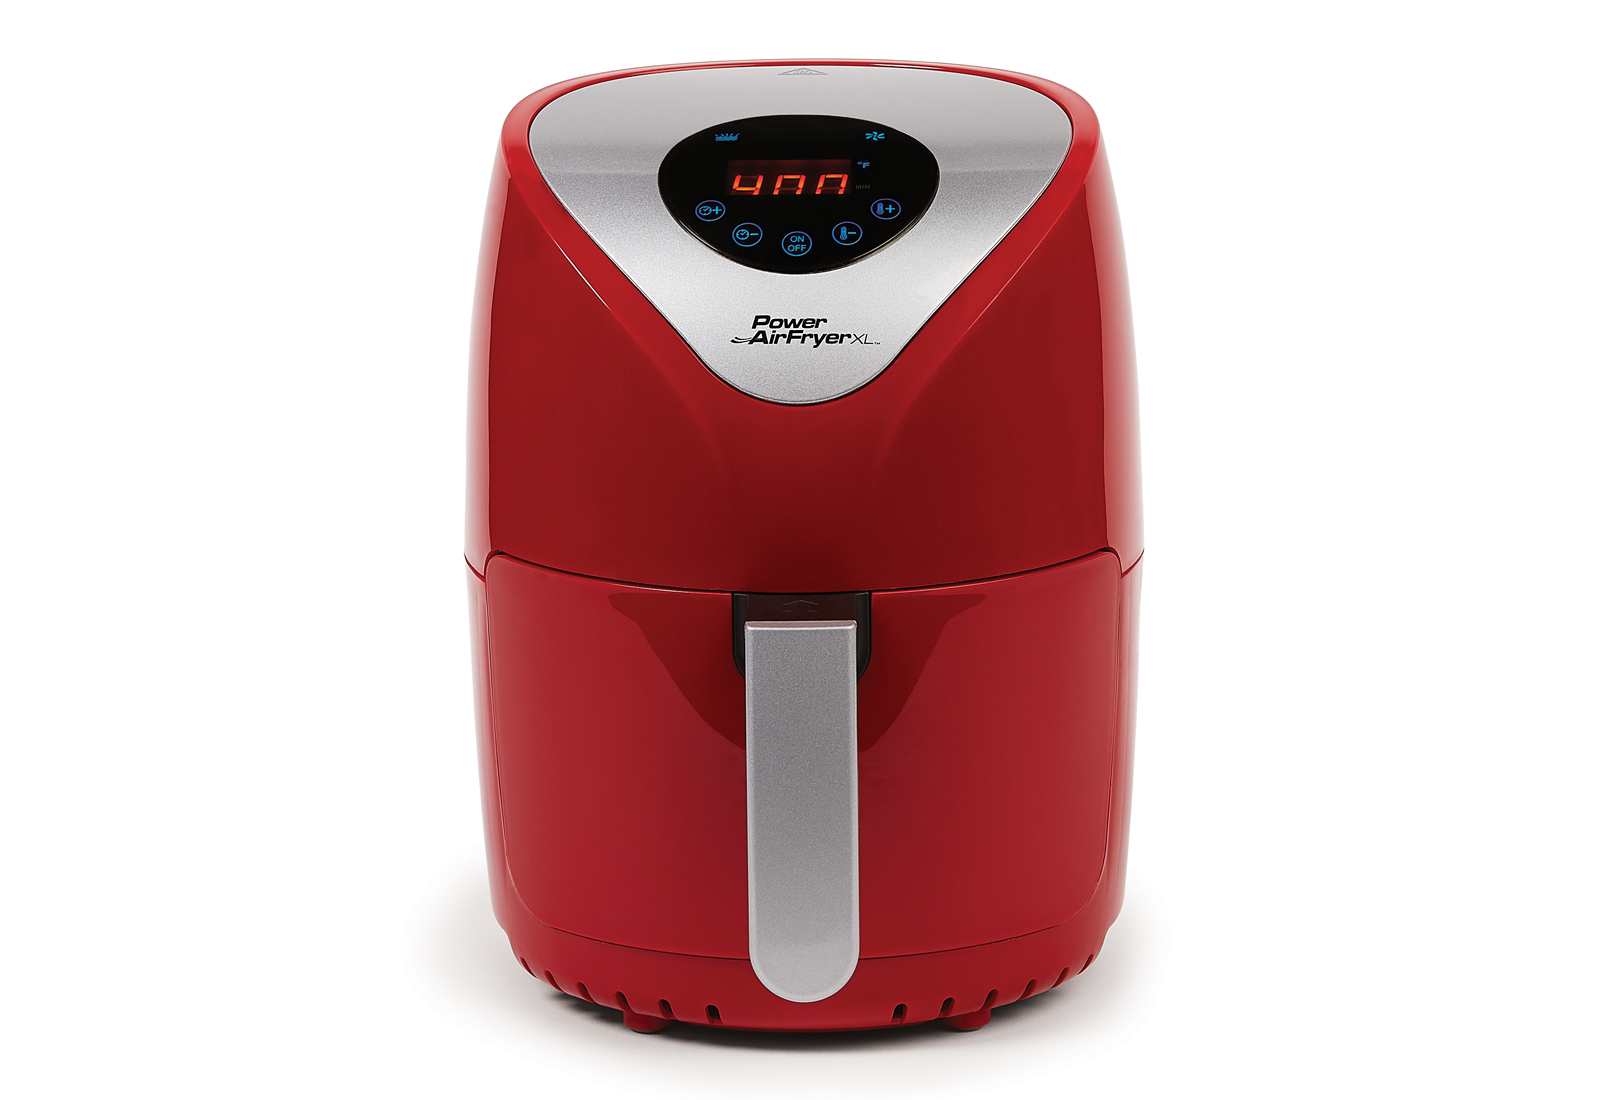 Power AirFryer XL 2QT Product Image